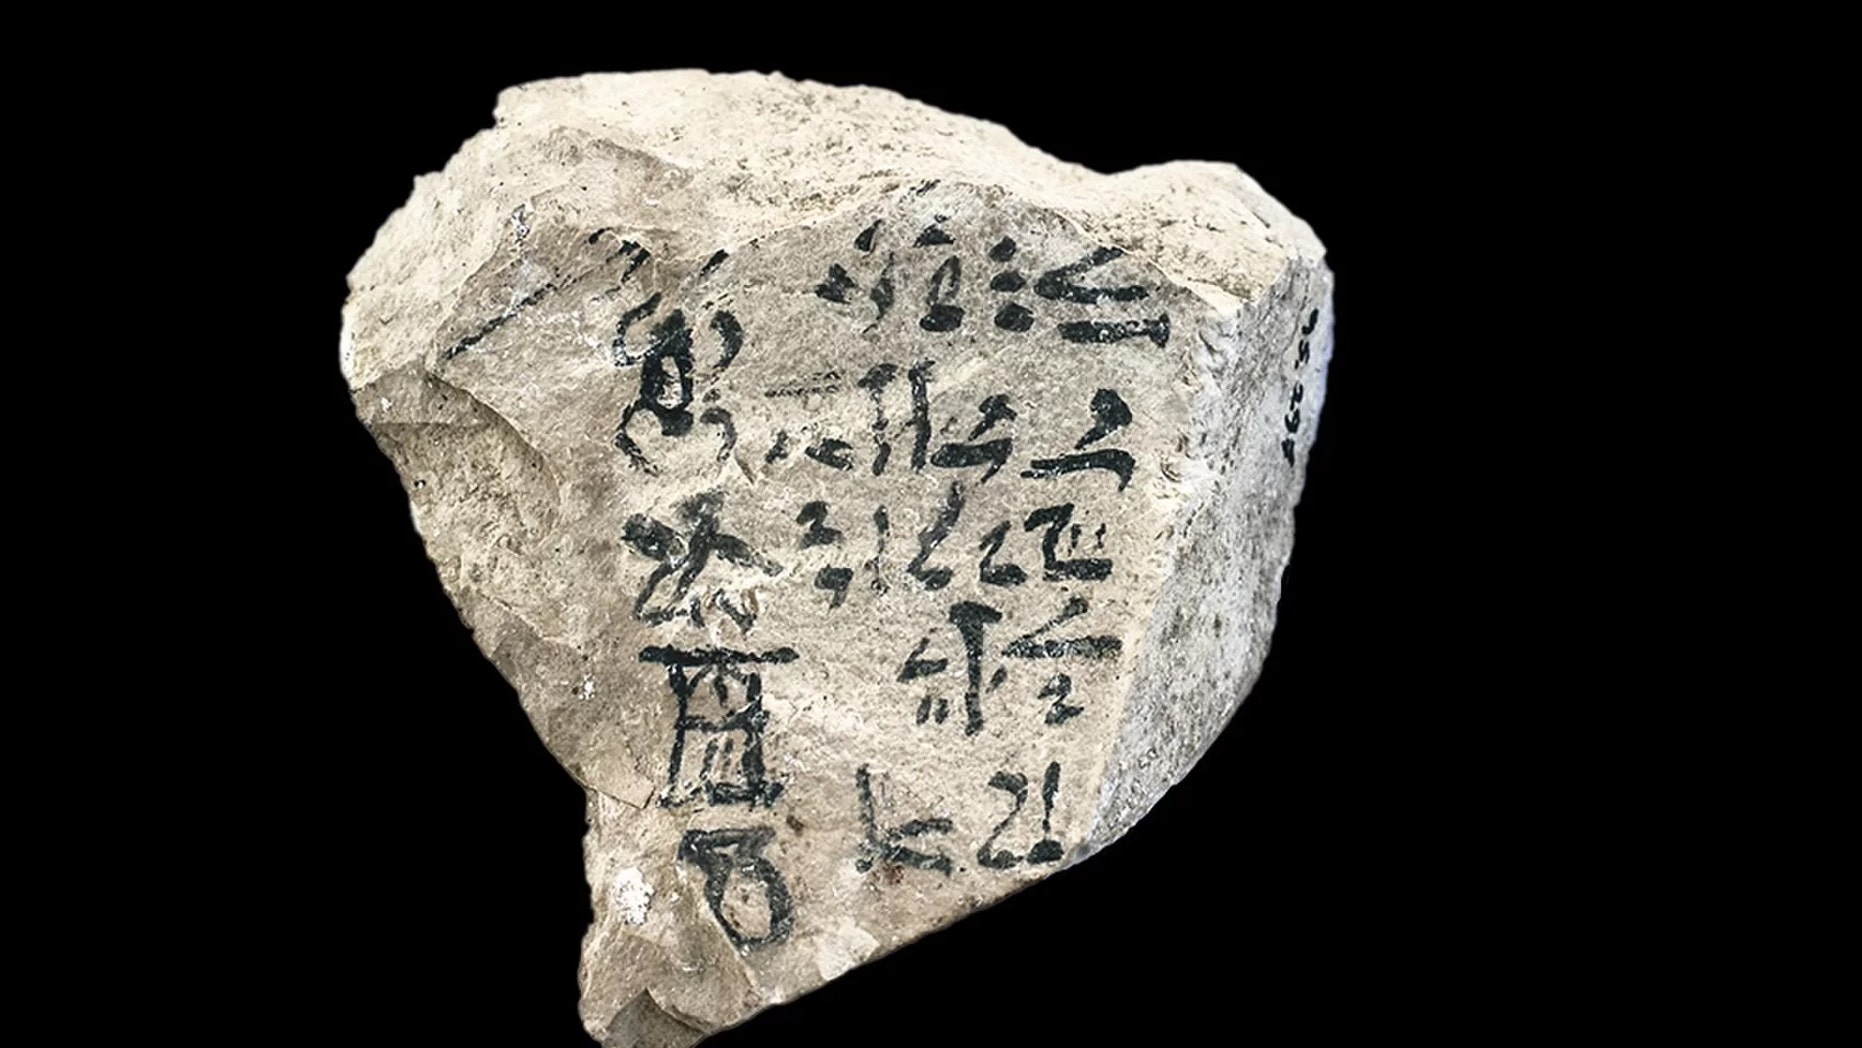 One side of the inscribed 3,400-year-old piece of pottery may show an ancient forerunner to our alphabet sequence. Credit: copyright Nigel Strudwick. No reproduction without permission